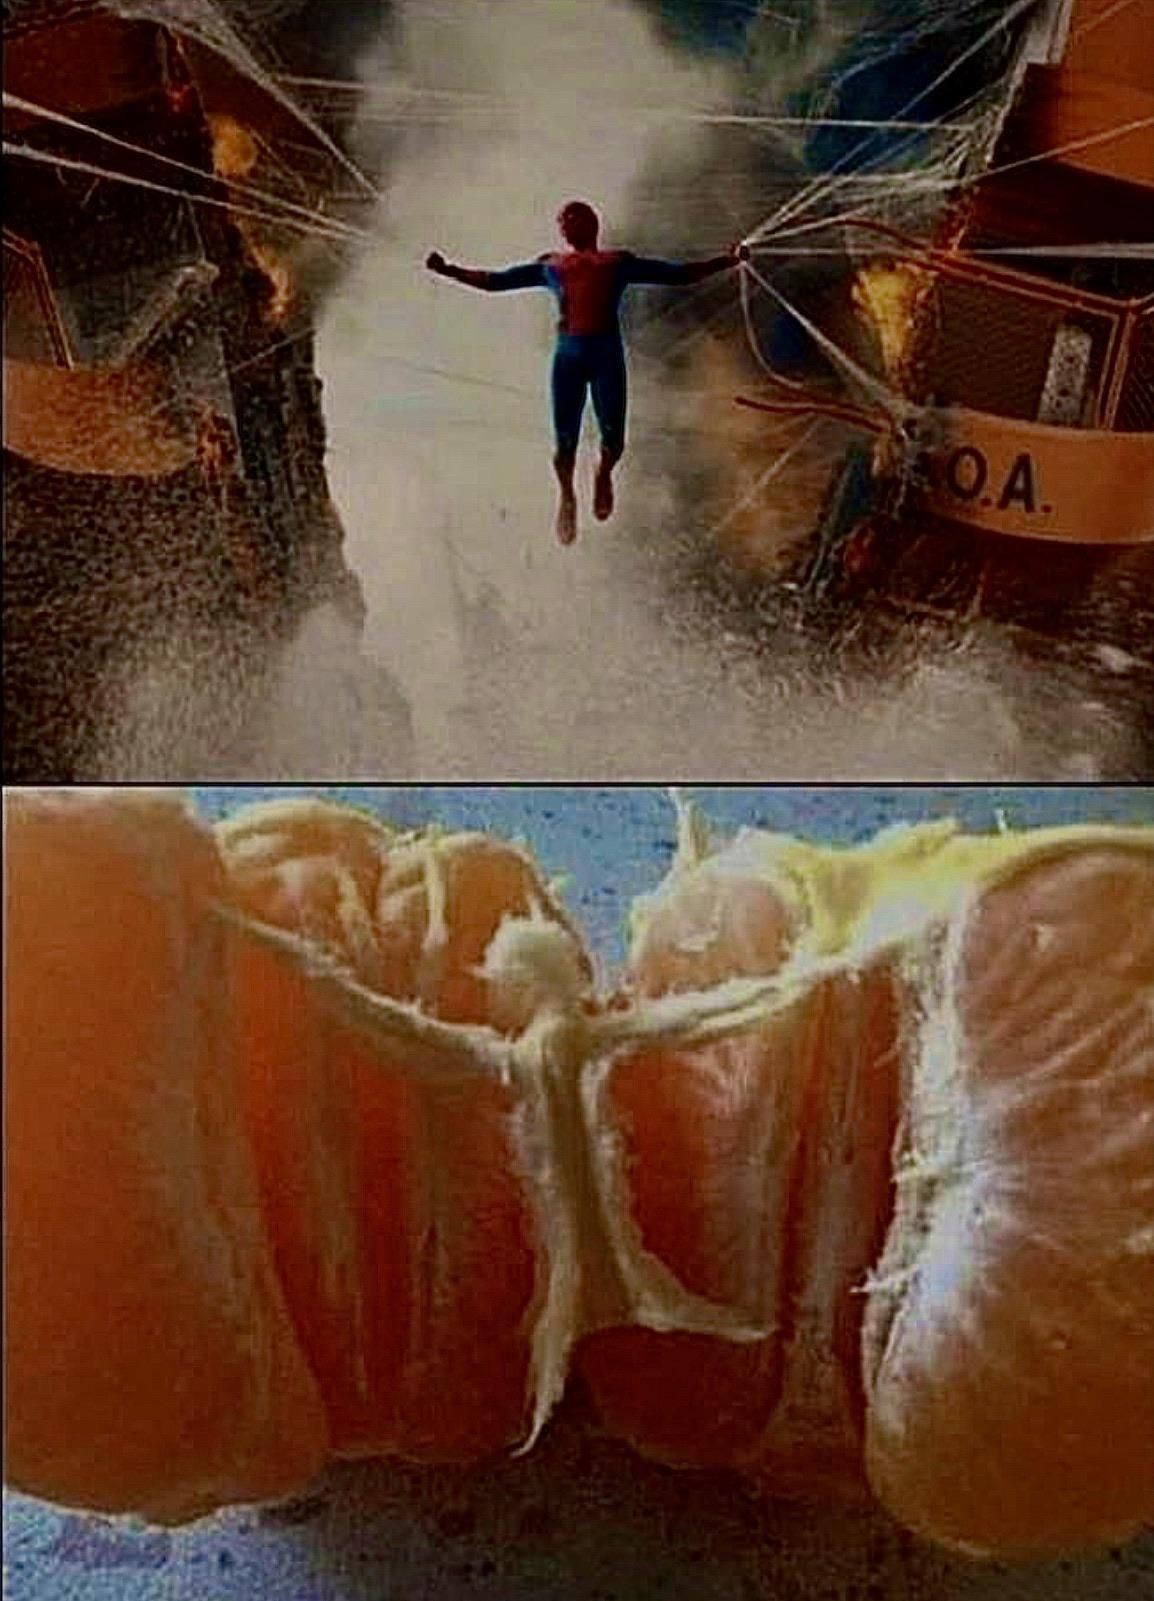 The possible real inspiration for an epic superhero scene